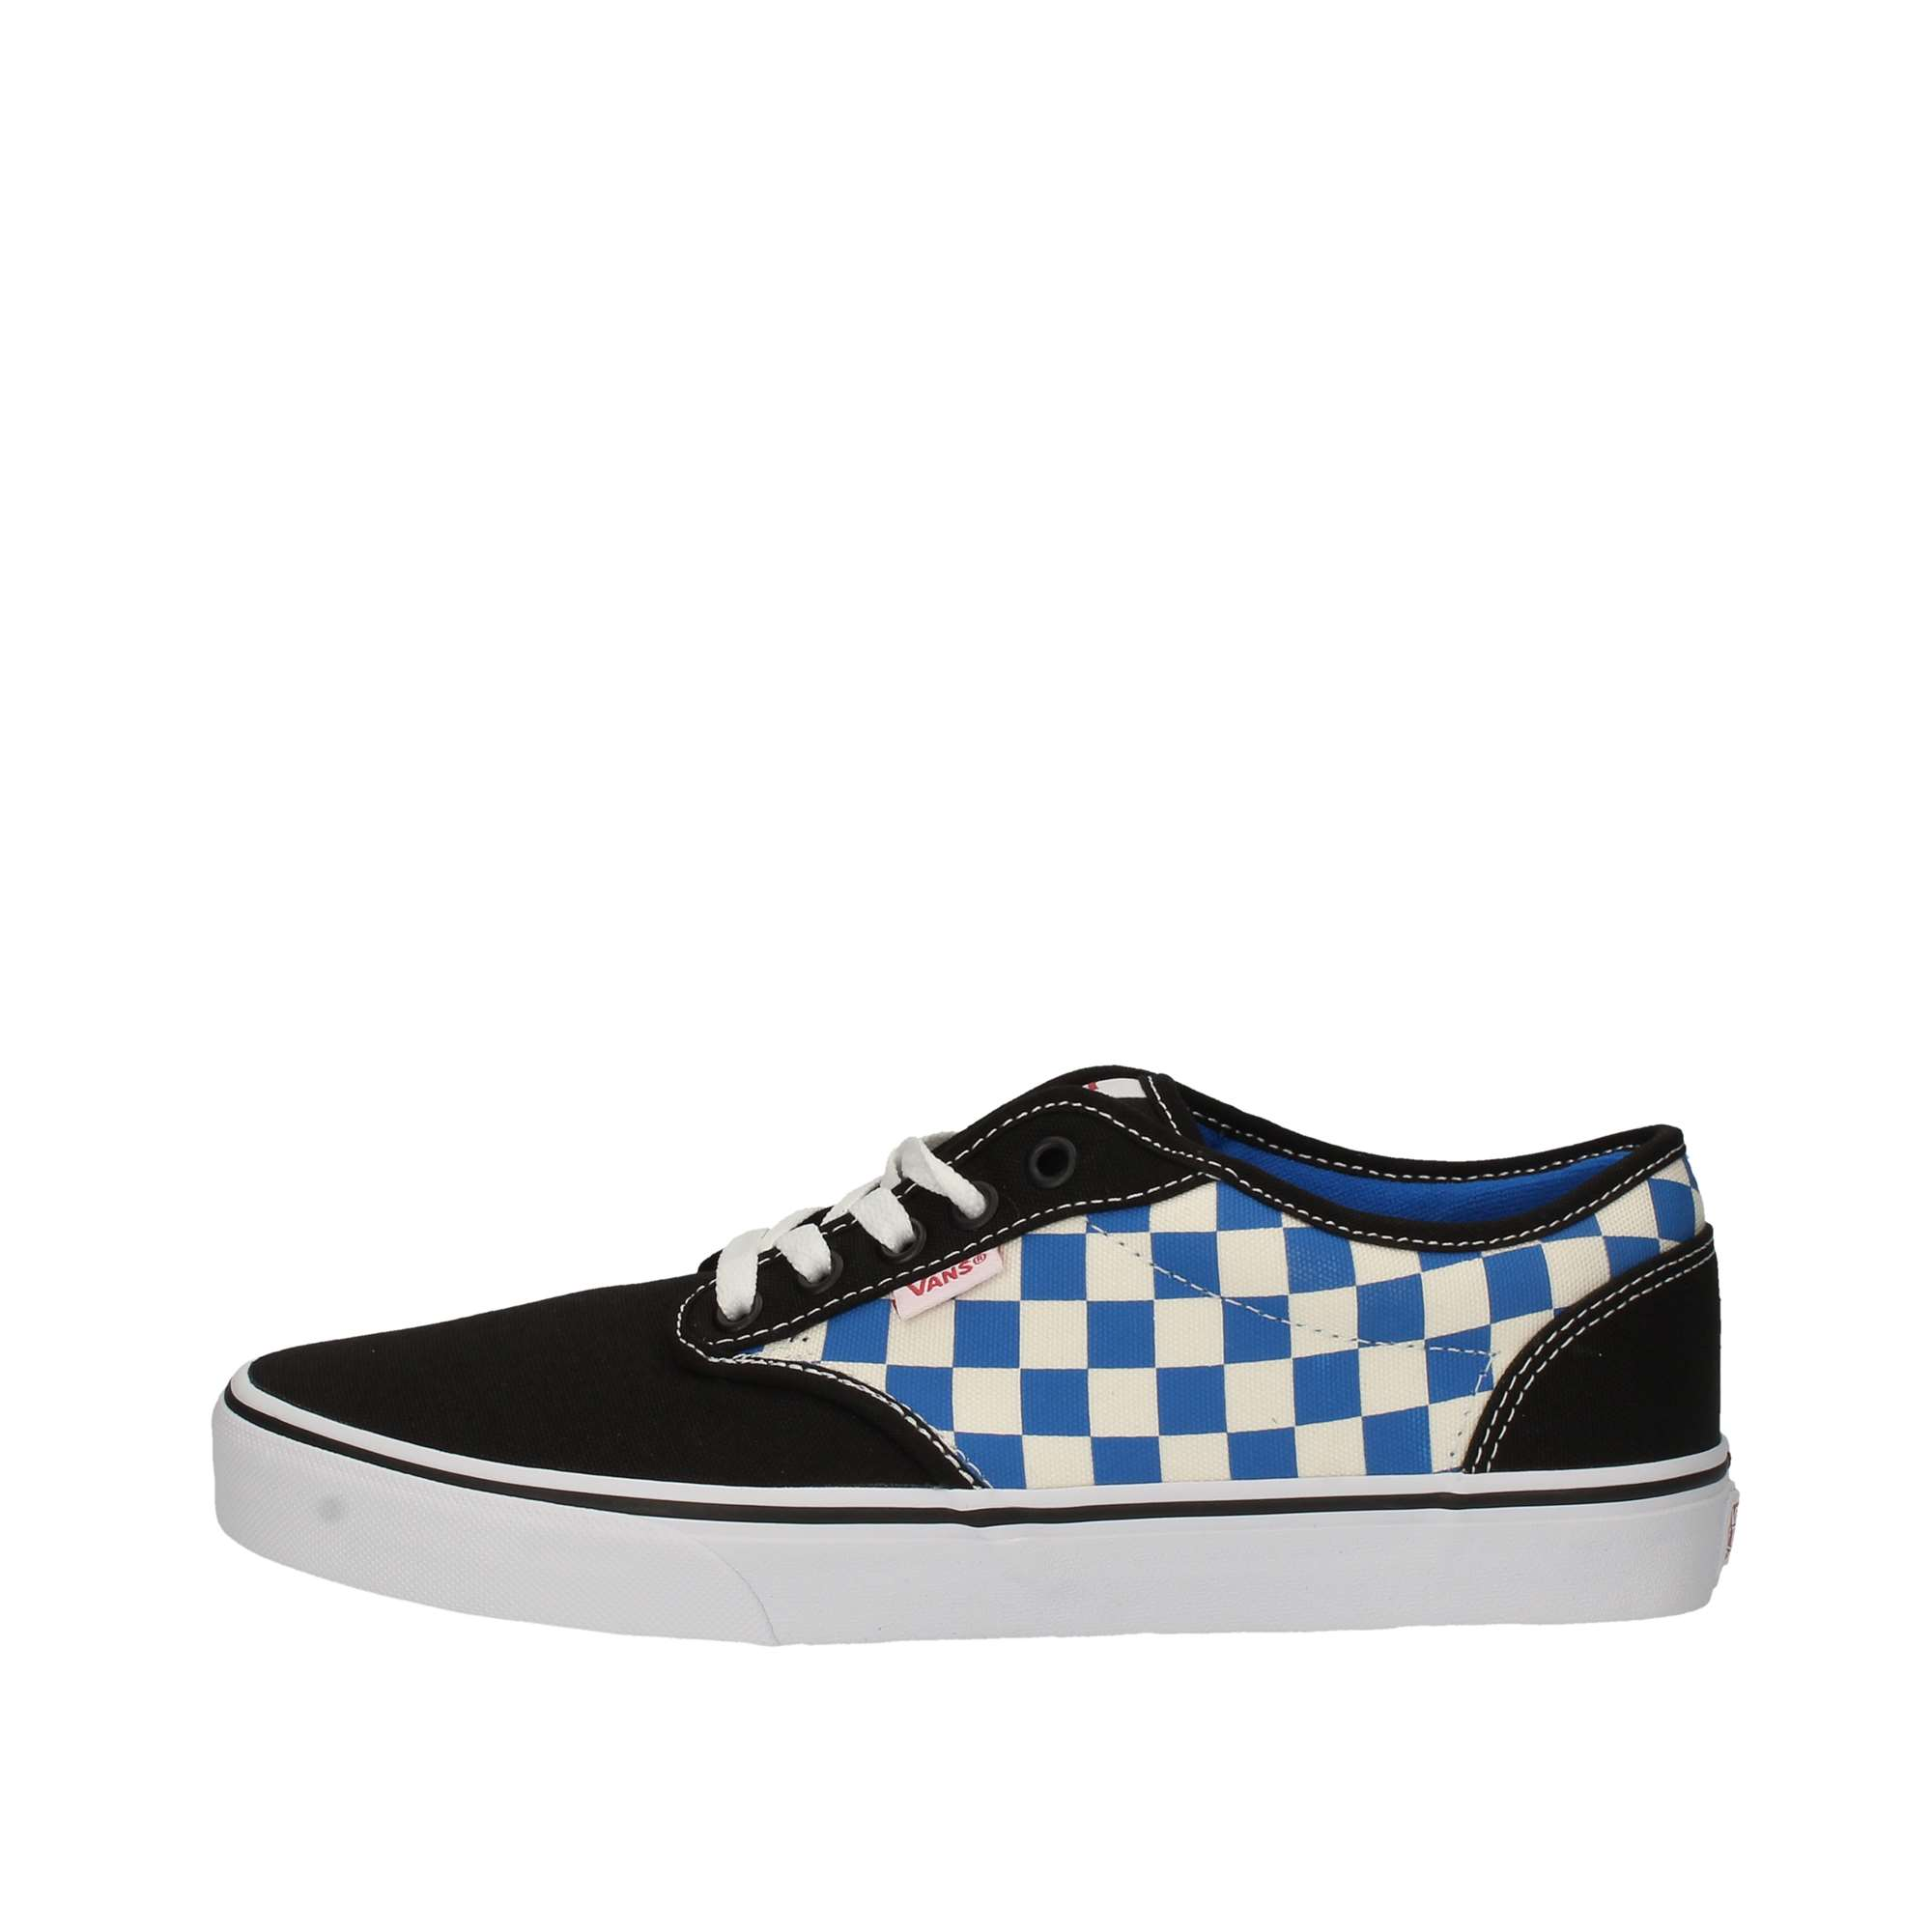 SNEAKERS Uomo VANS VN0 0015GQ1L Primavera/Estate